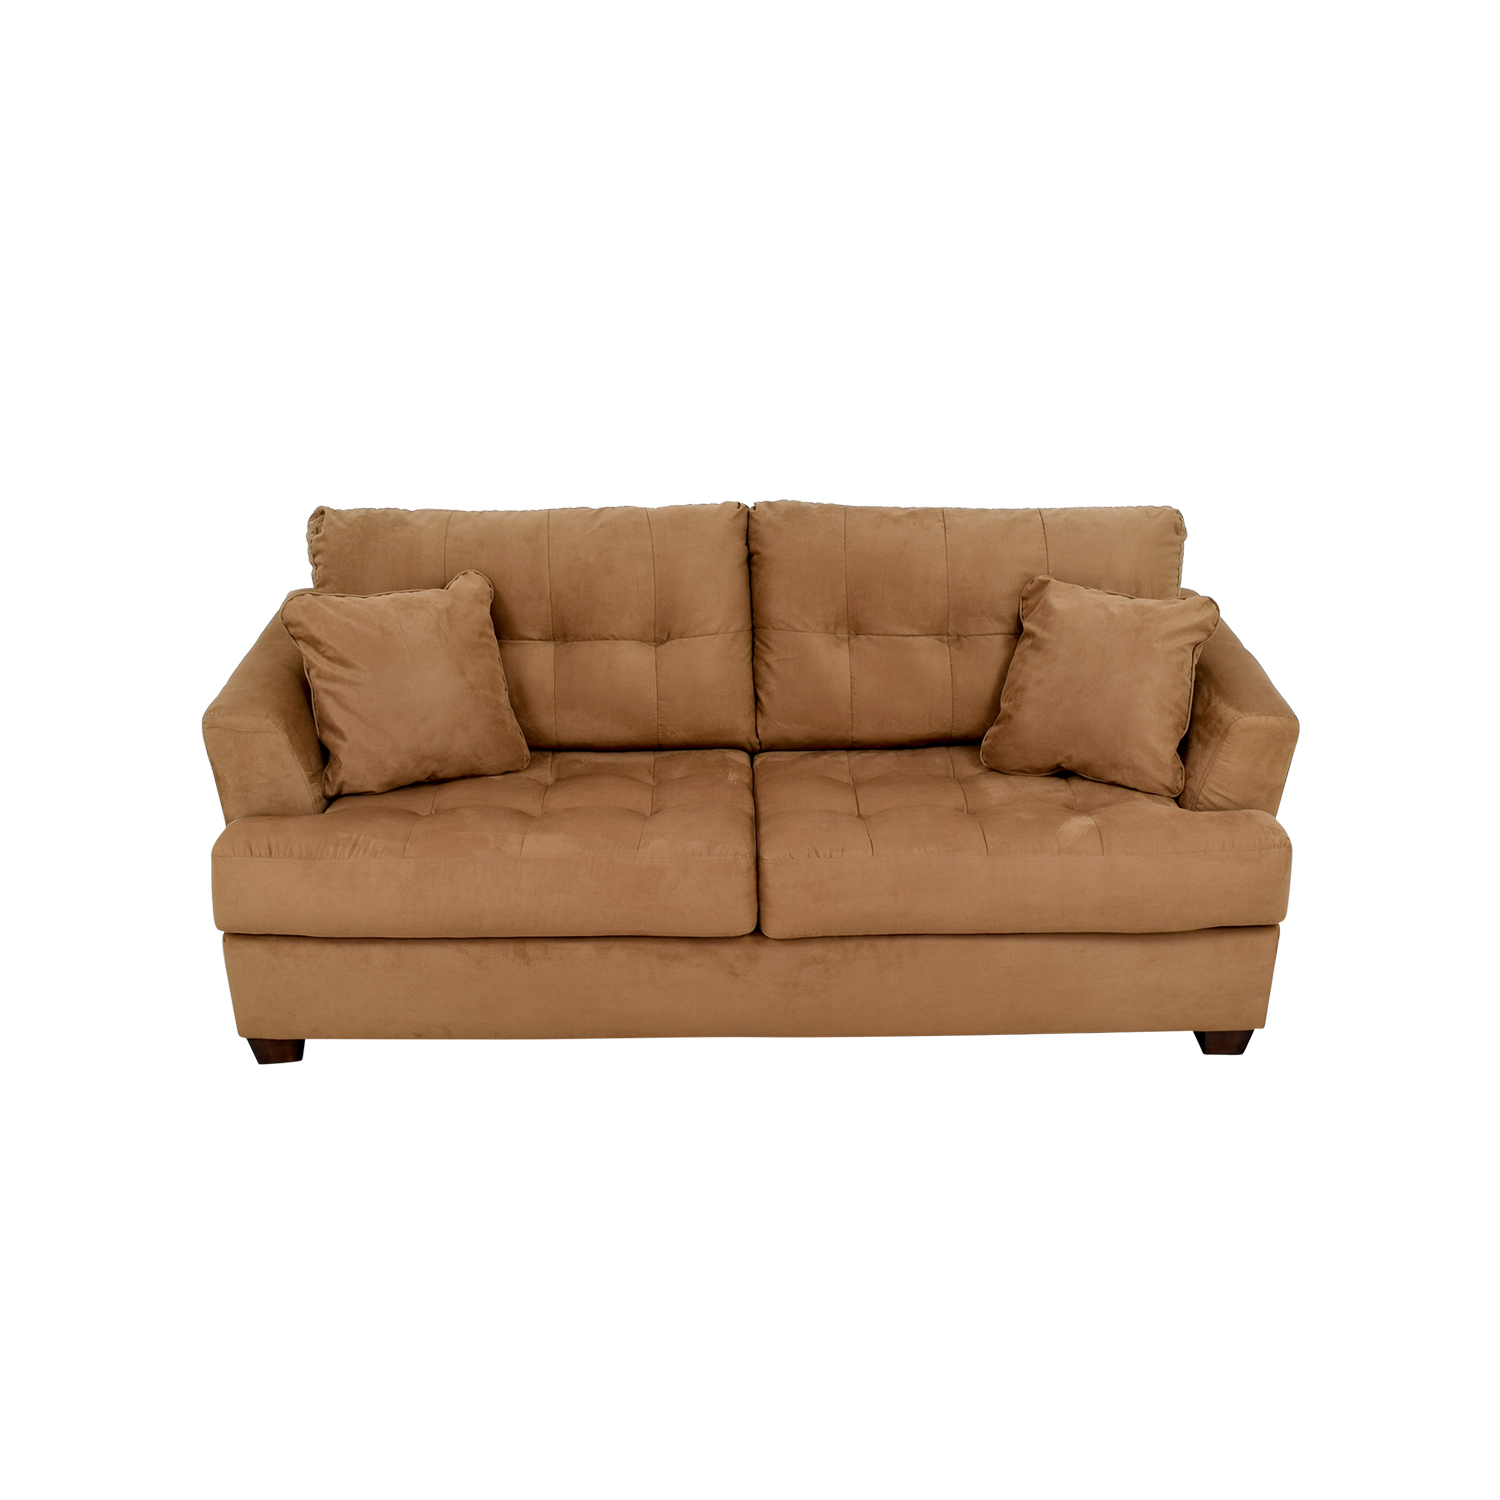 Tan microfiber sofa tan microfiber contemporary sectional for Microfiber sectional sofa